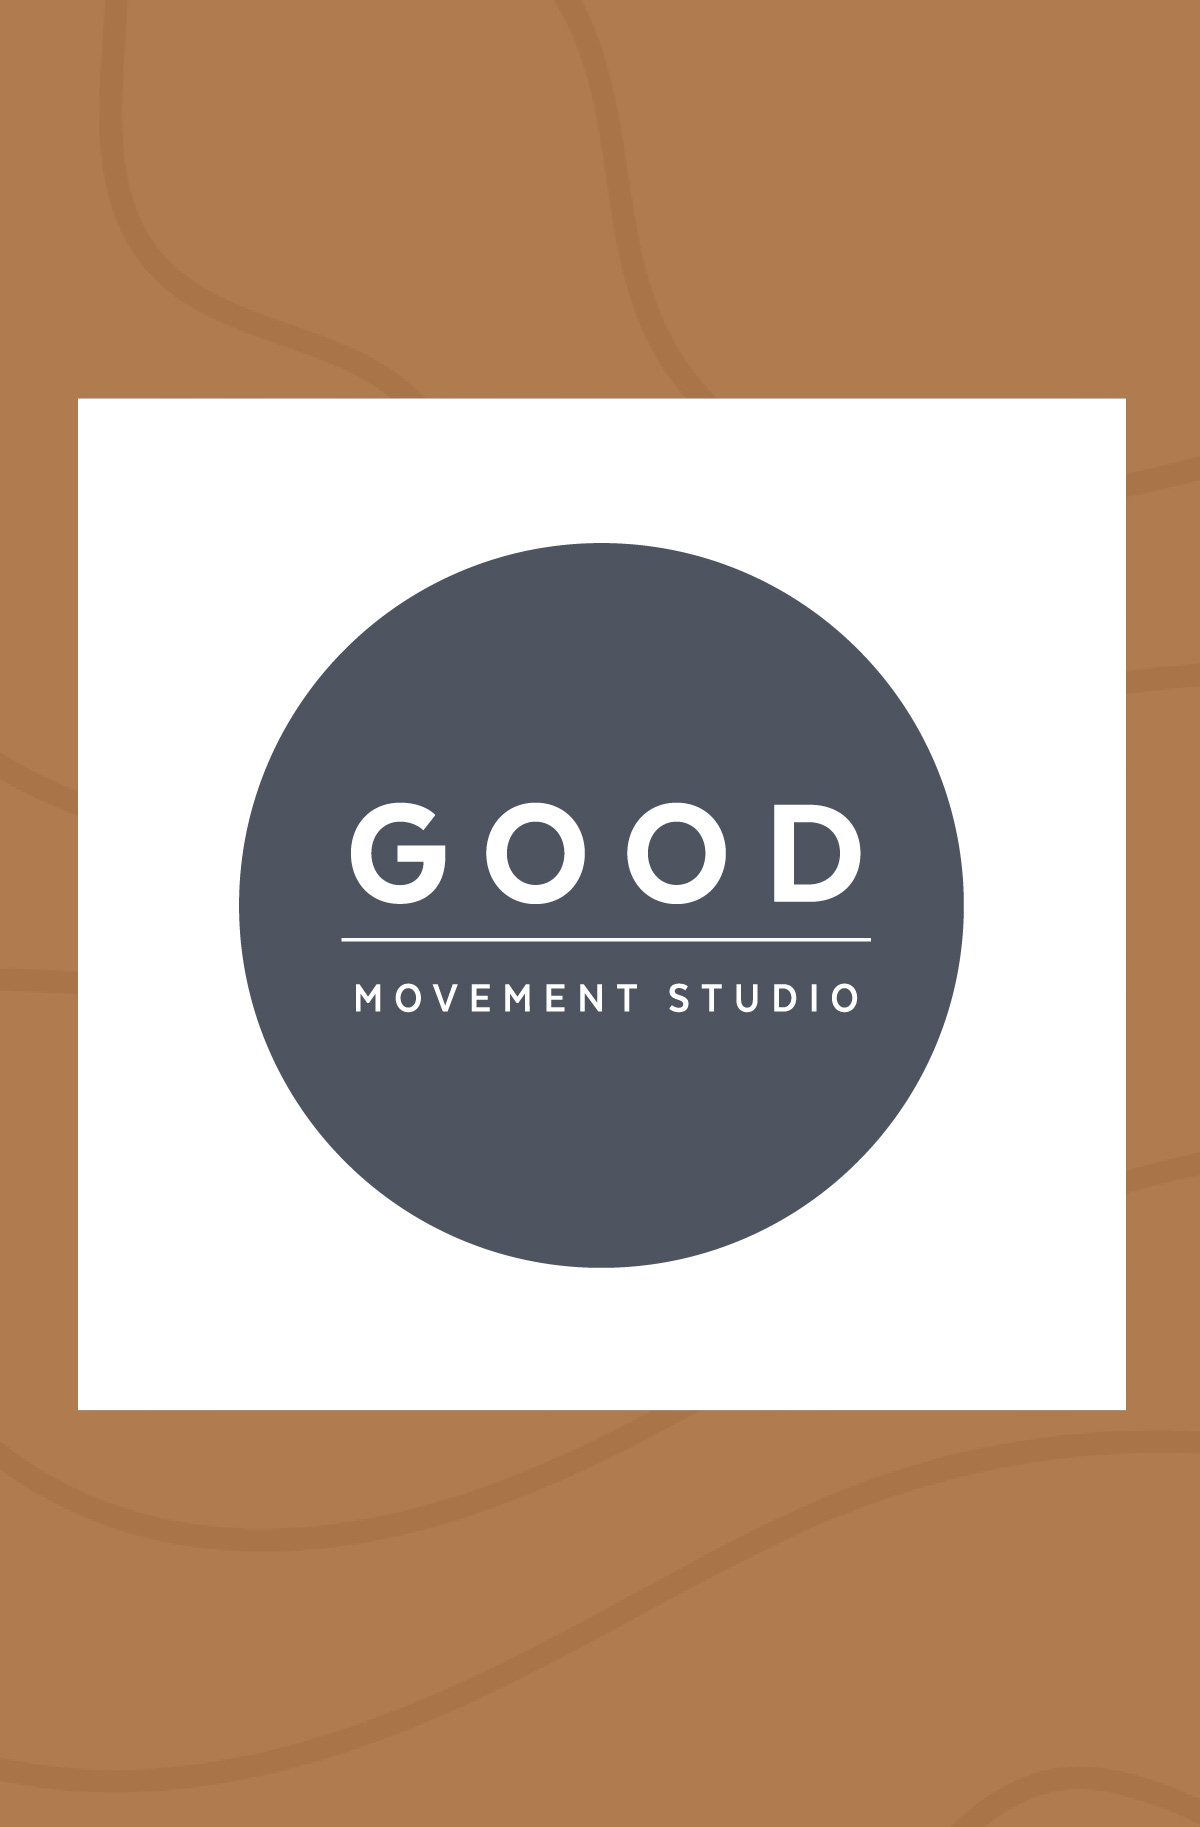 Good-Movement-Studio.jpg